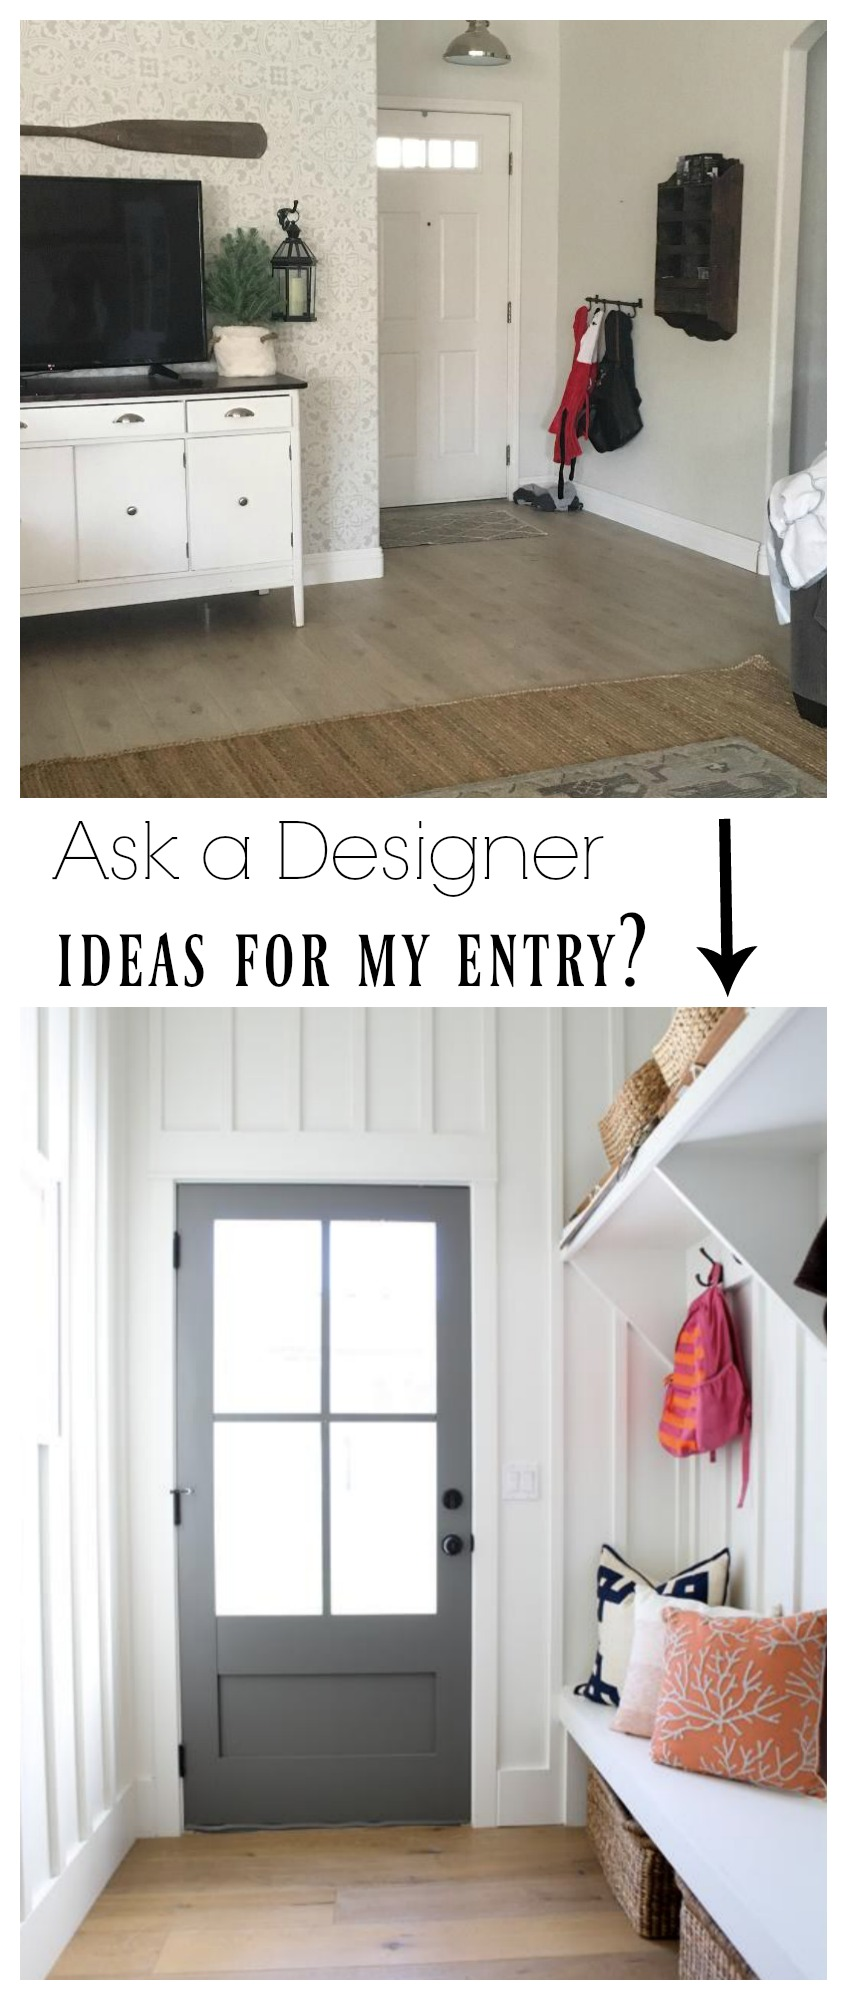 Ask a Designer - Ideas for my Small Entry?